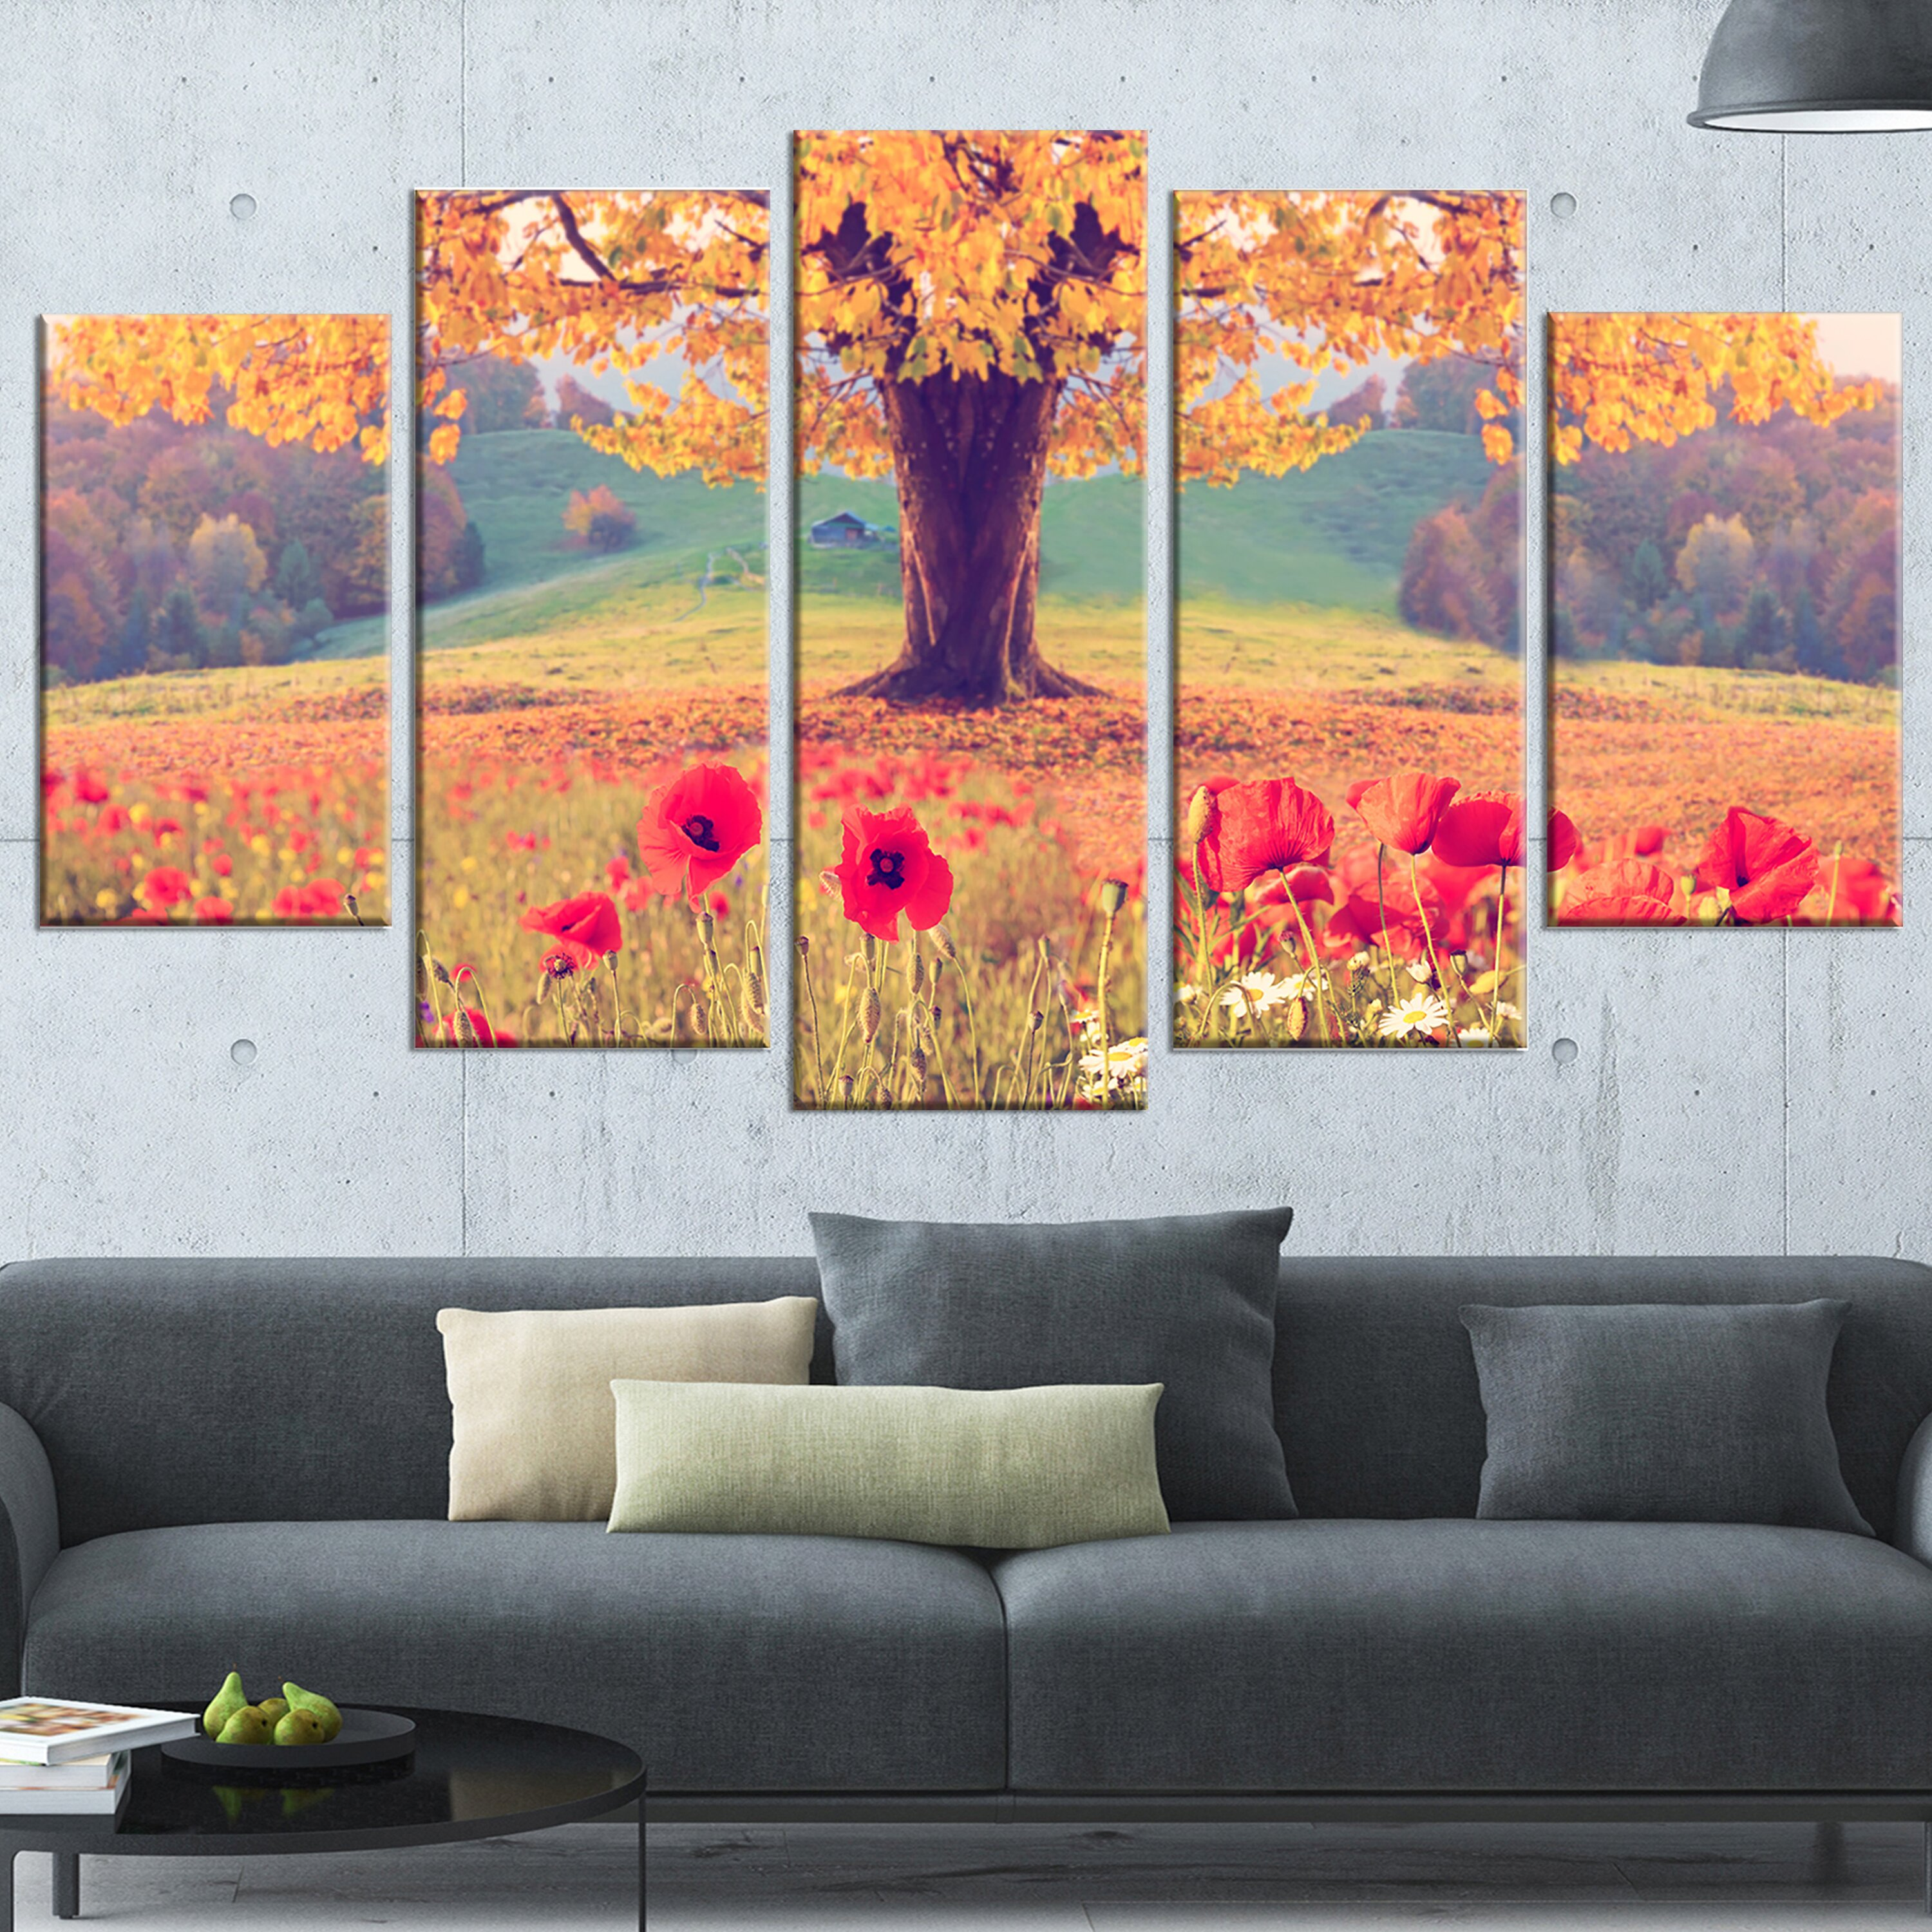 designart 39 landscape with poppy flowers 39 5 piece wall art on wrapped canvas set wayfair. Black Bedroom Furniture Sets. Home Design Ideas